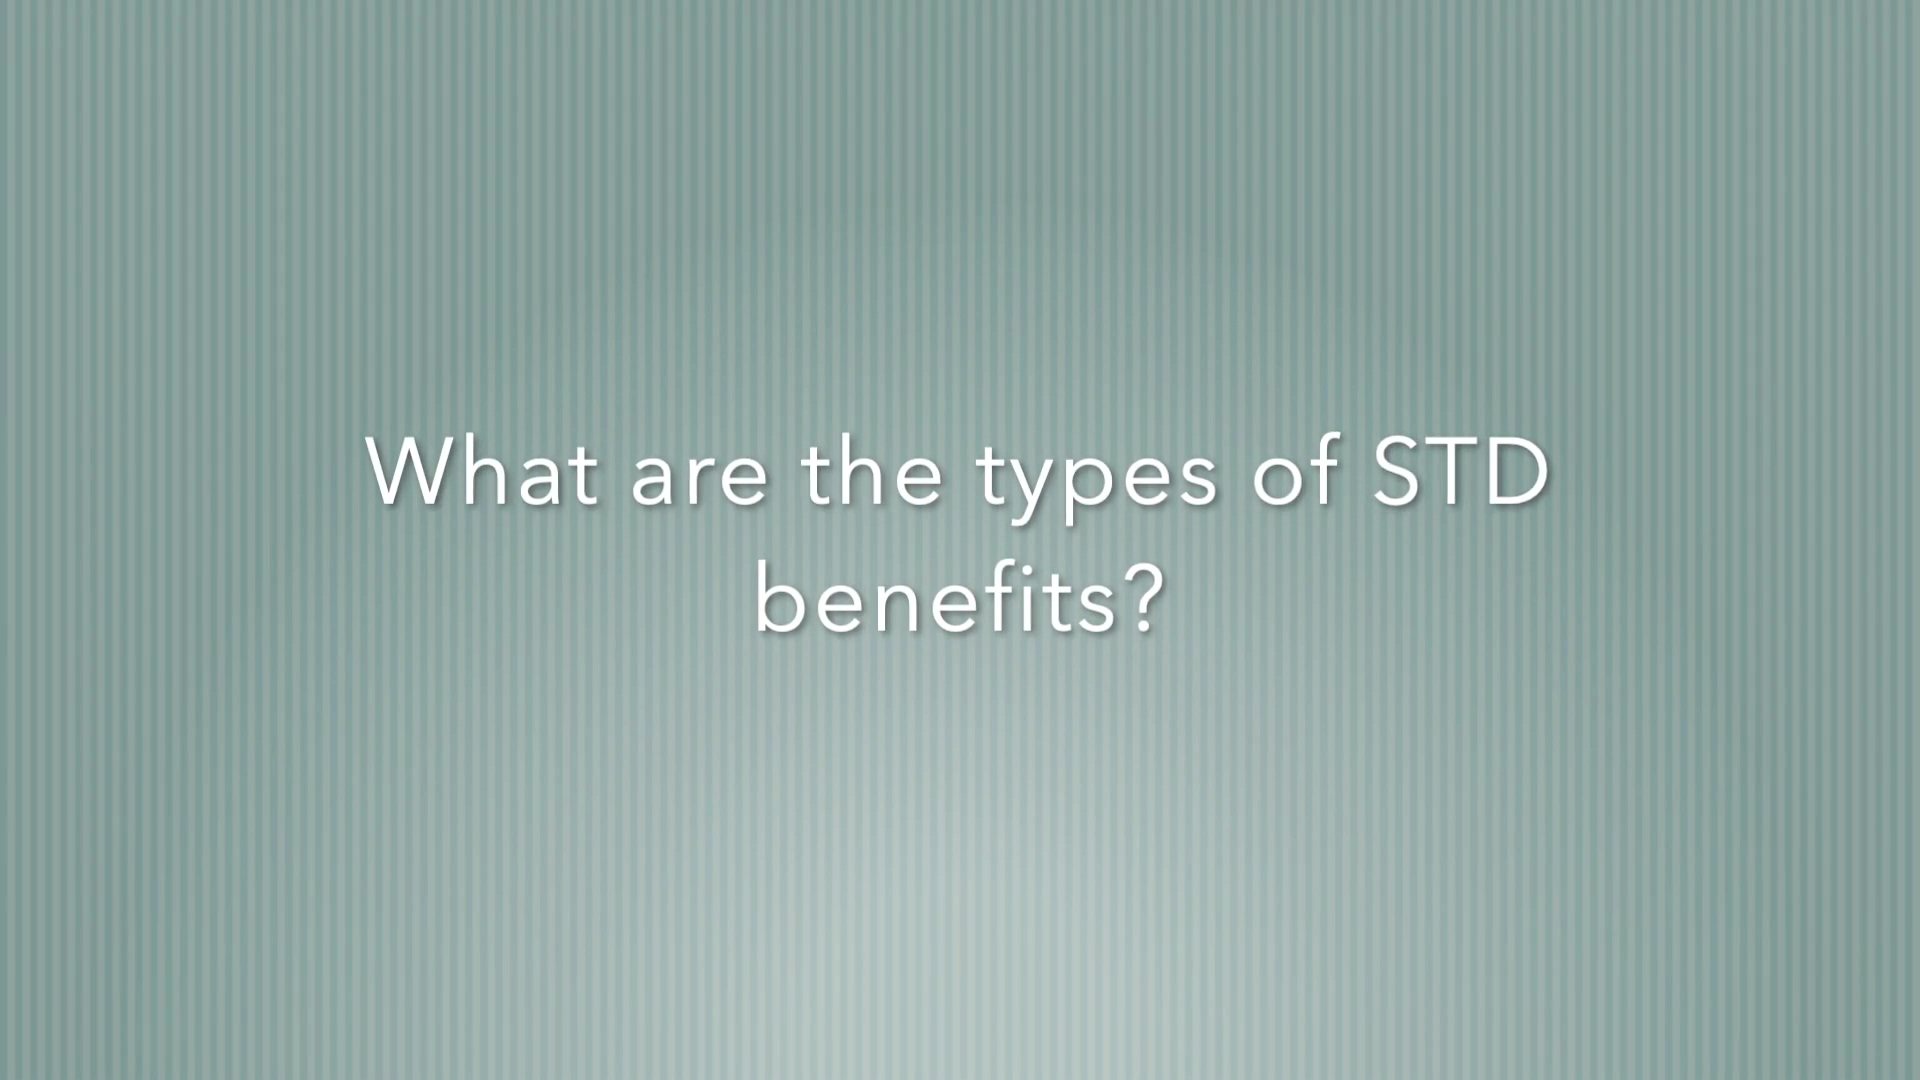 What are the types of STD benefits?